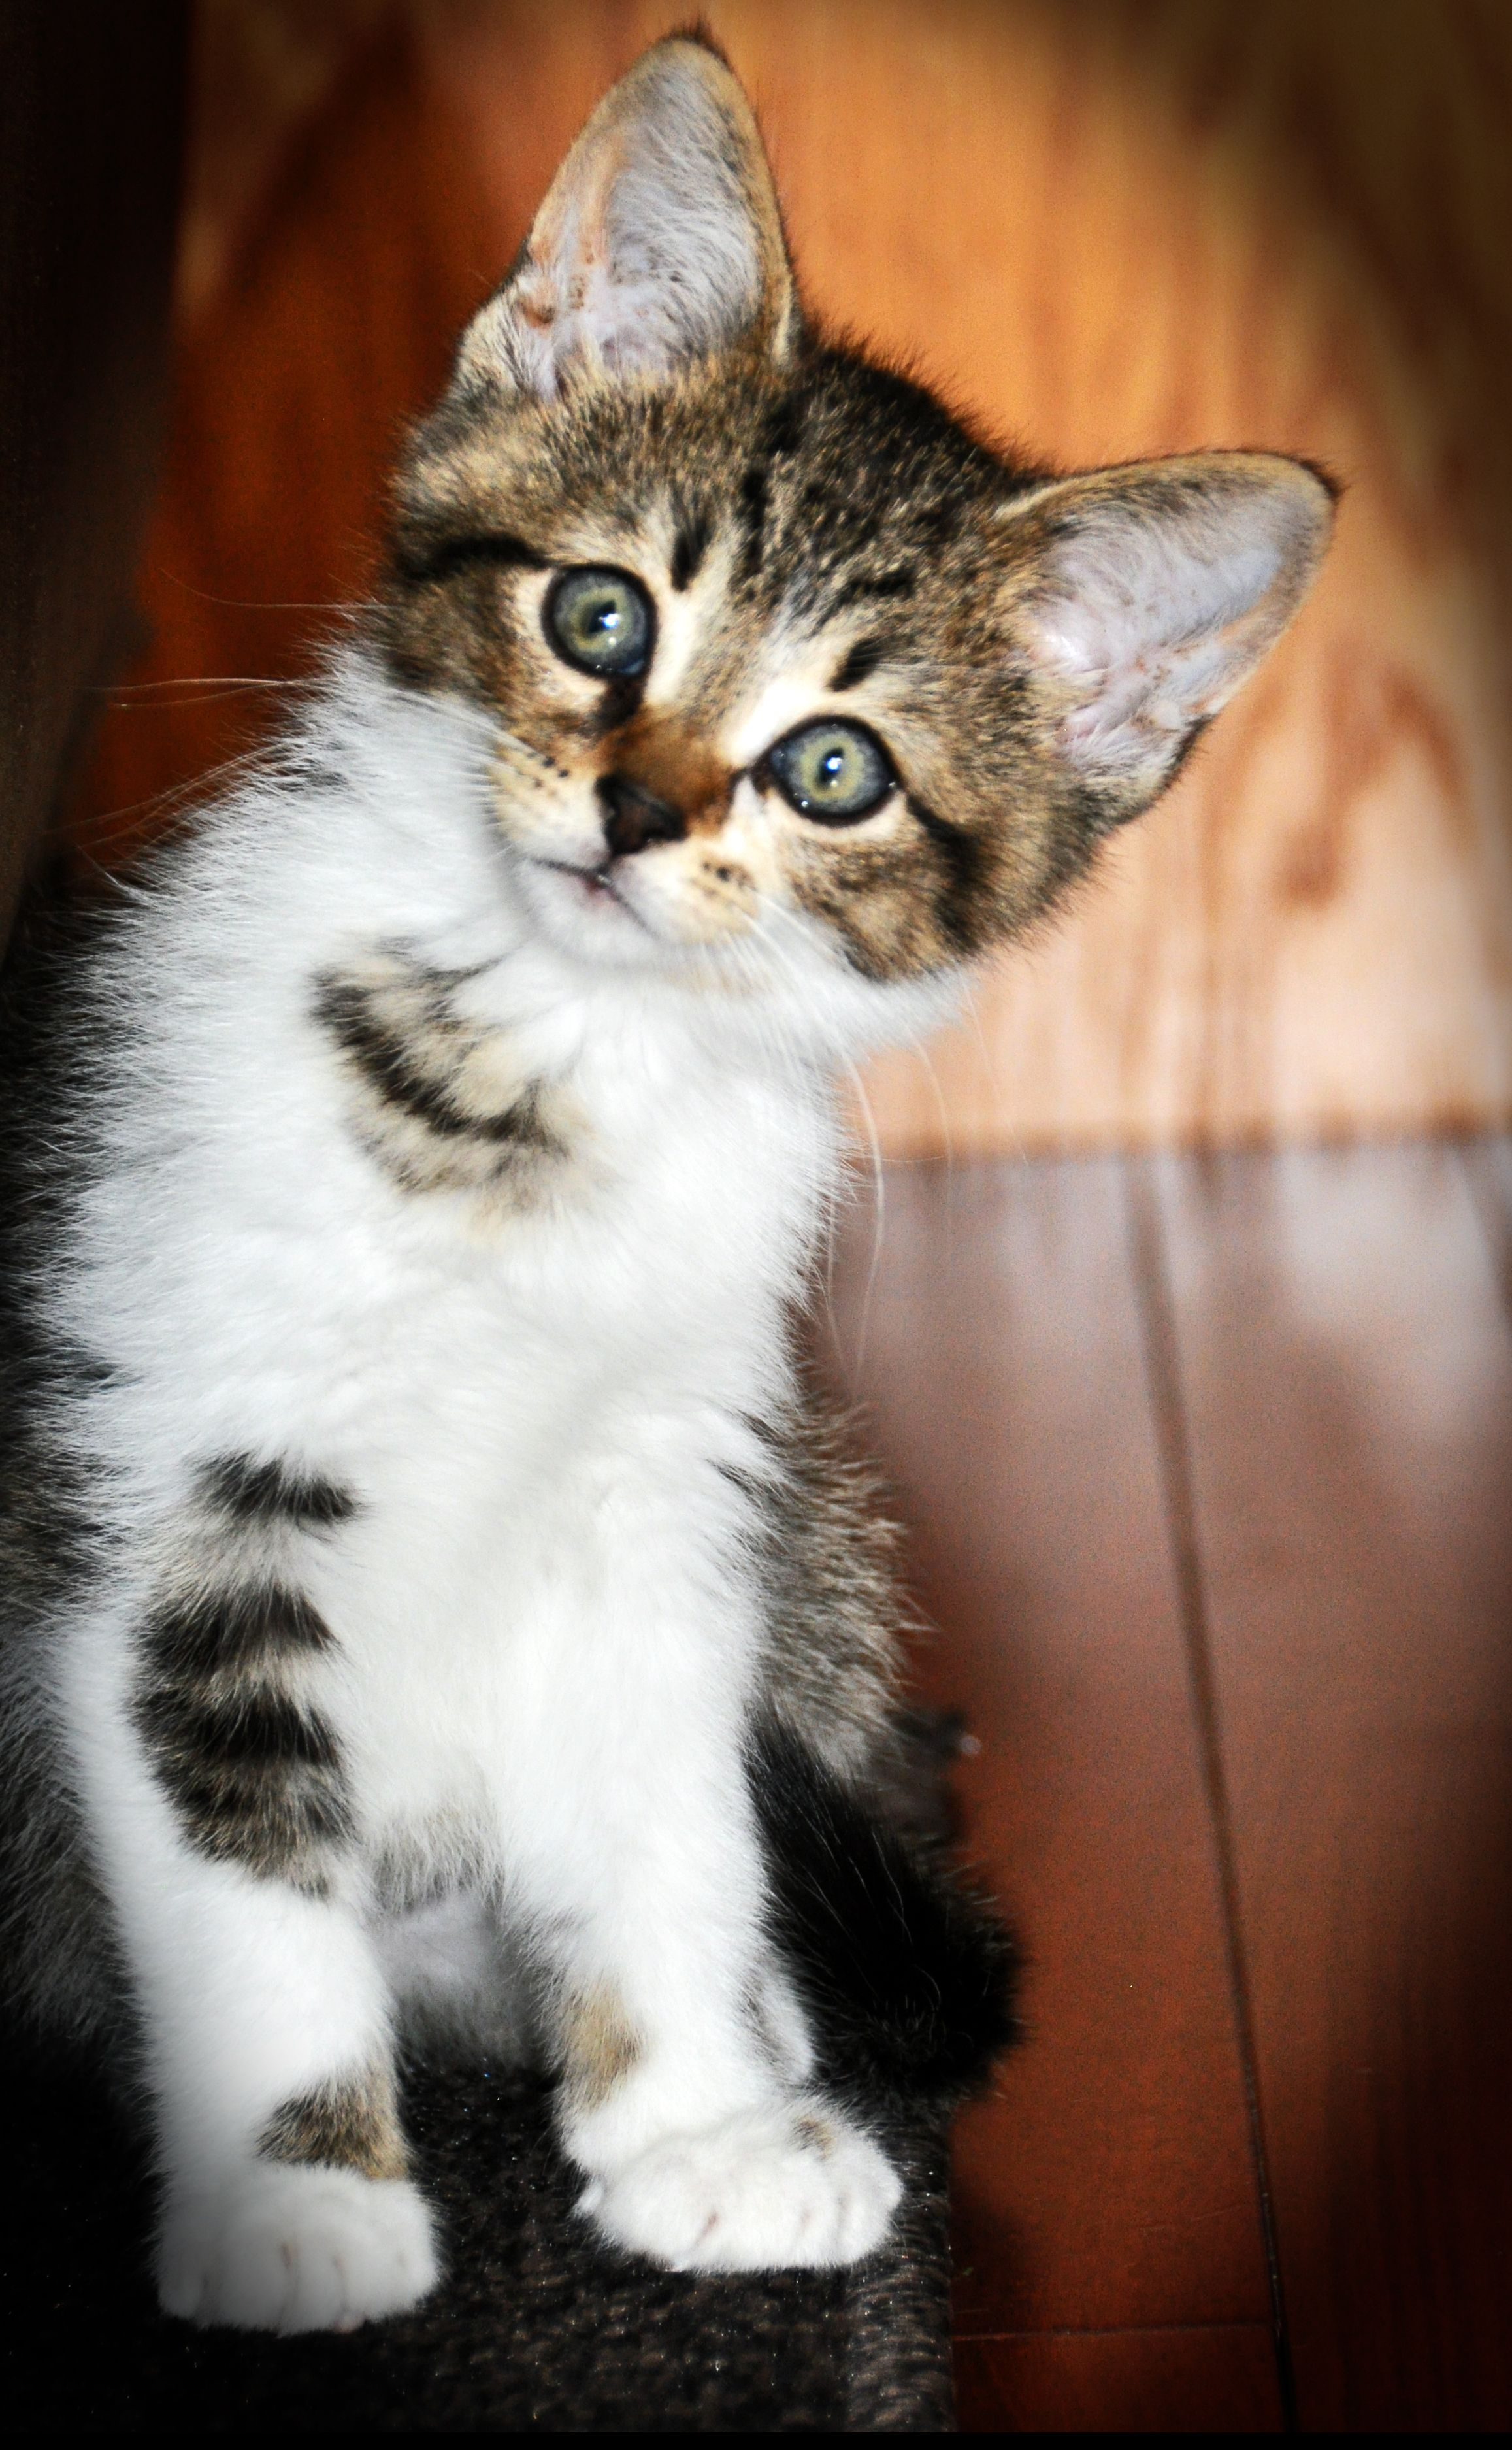 About Us Kittens, puppies, Cute animal pictures, Animals